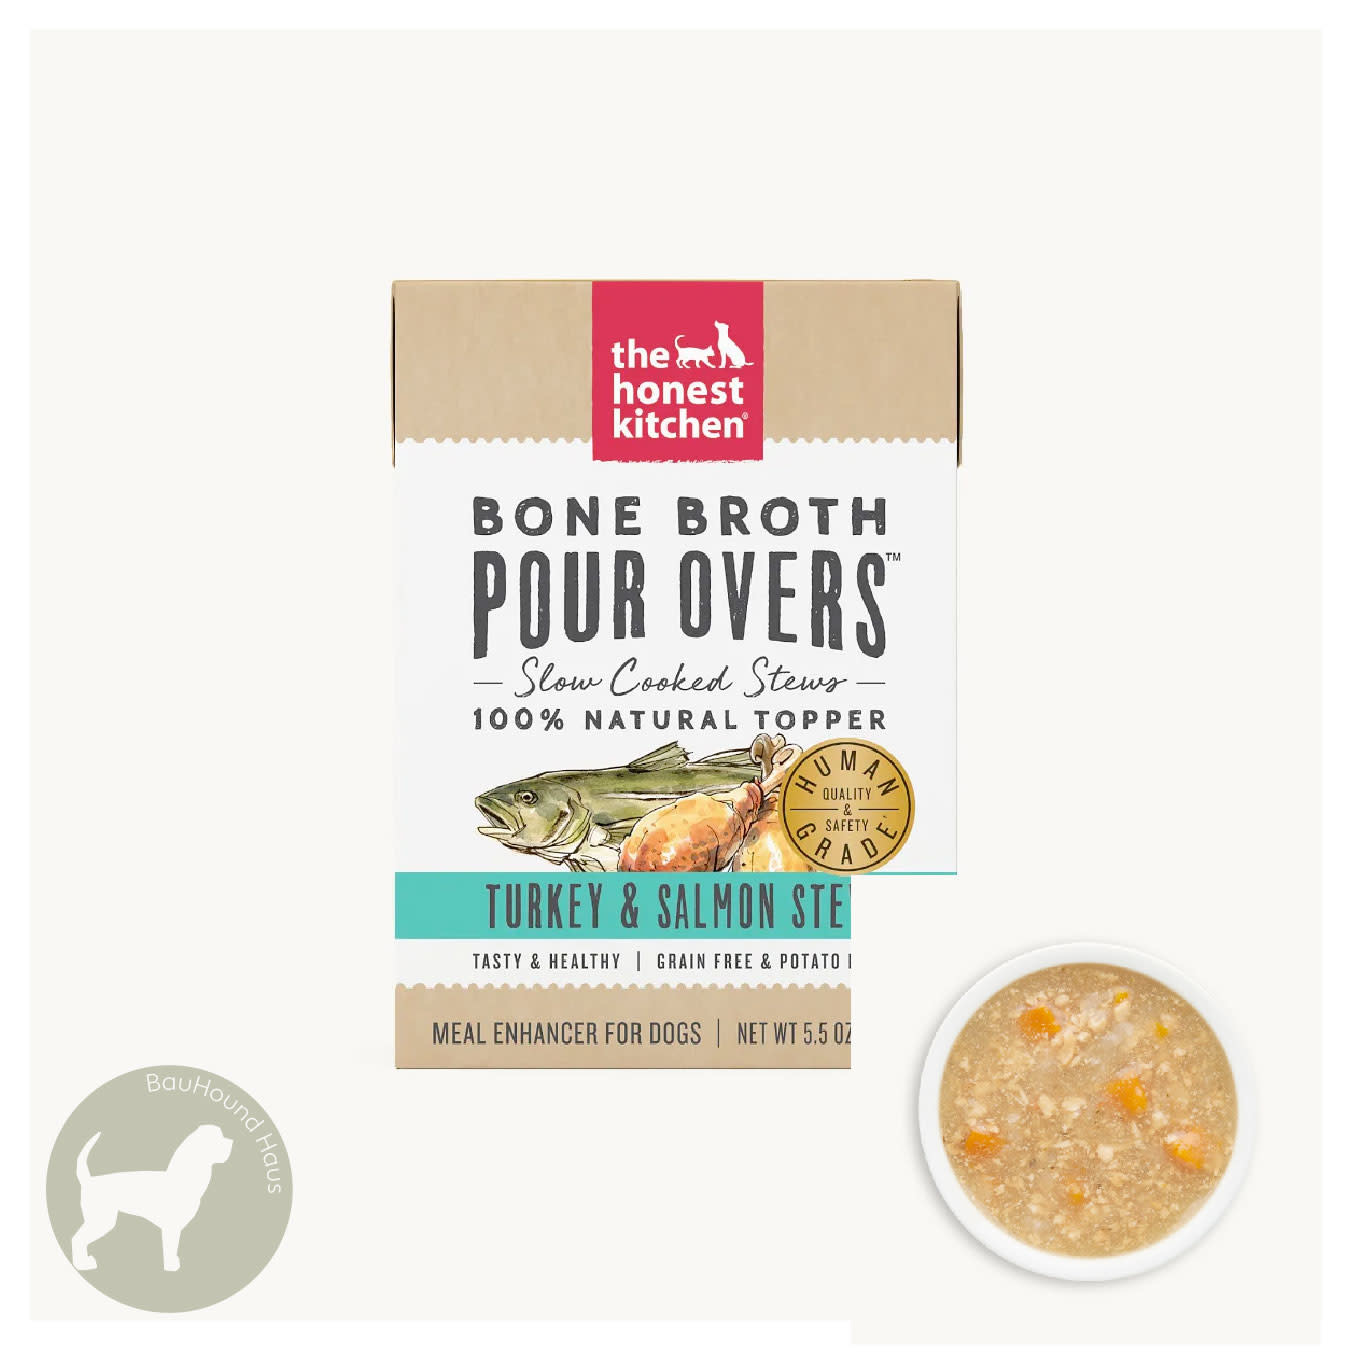 Honest Kitchen Honest Kitchen Pour Overs Turkey & Salmon Stew Bone Brorth, 5.5oz